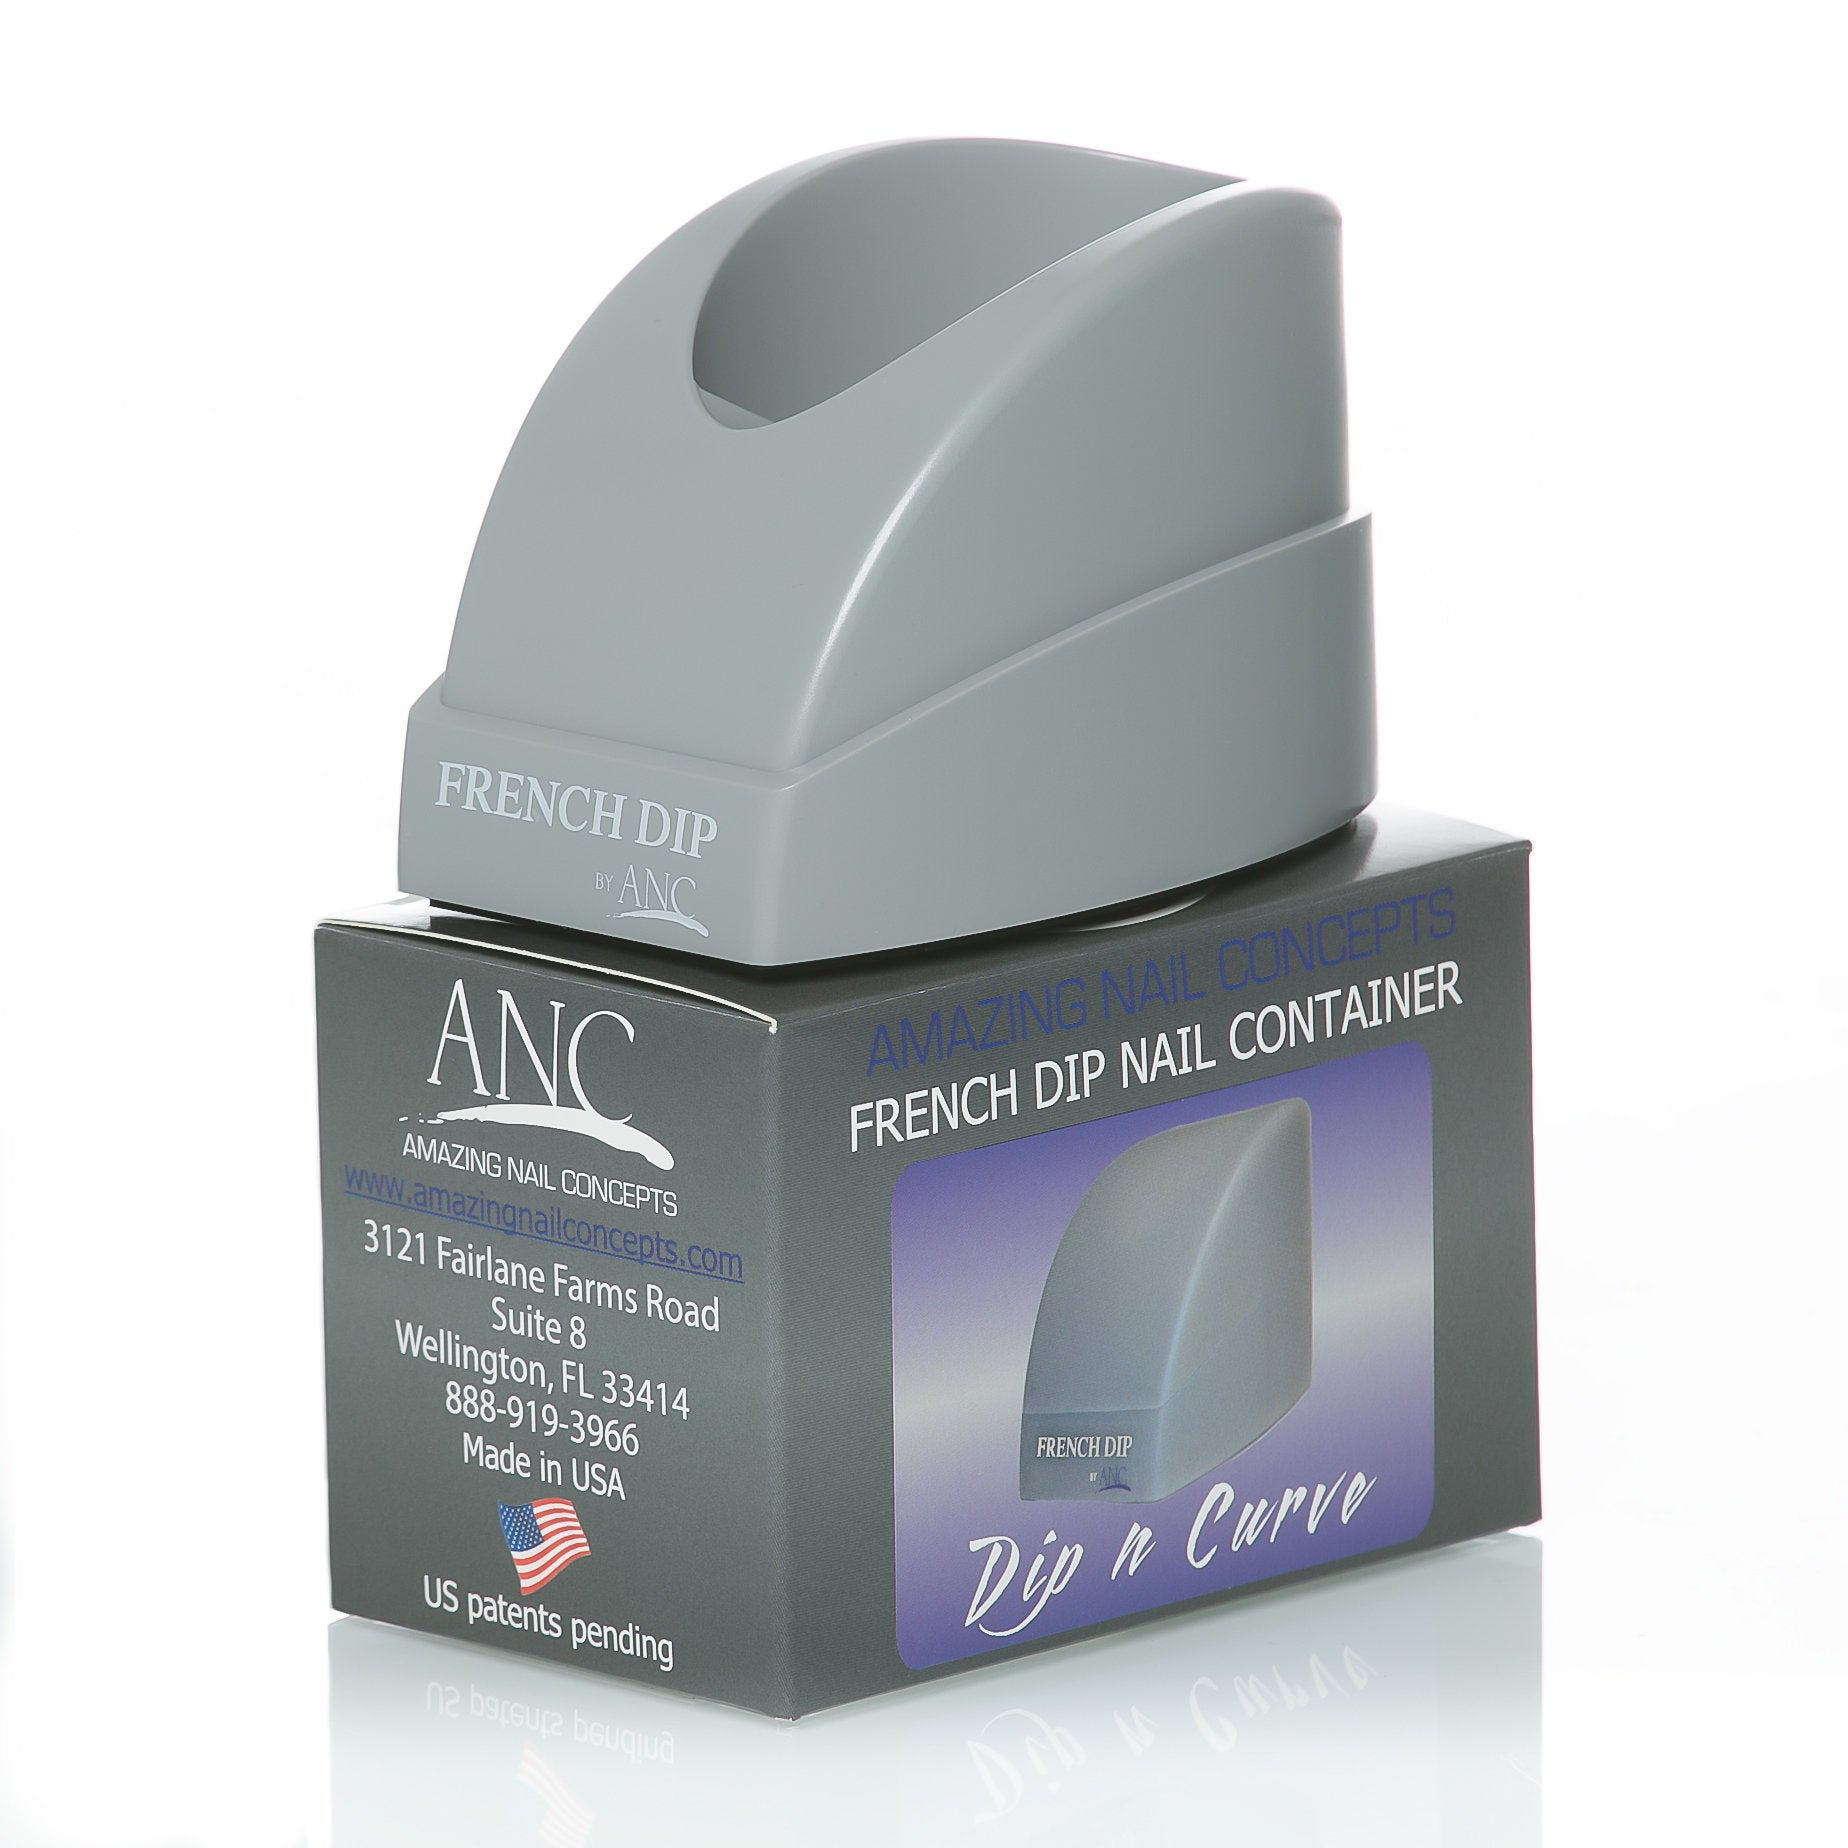 ANC French Dip Nail Container